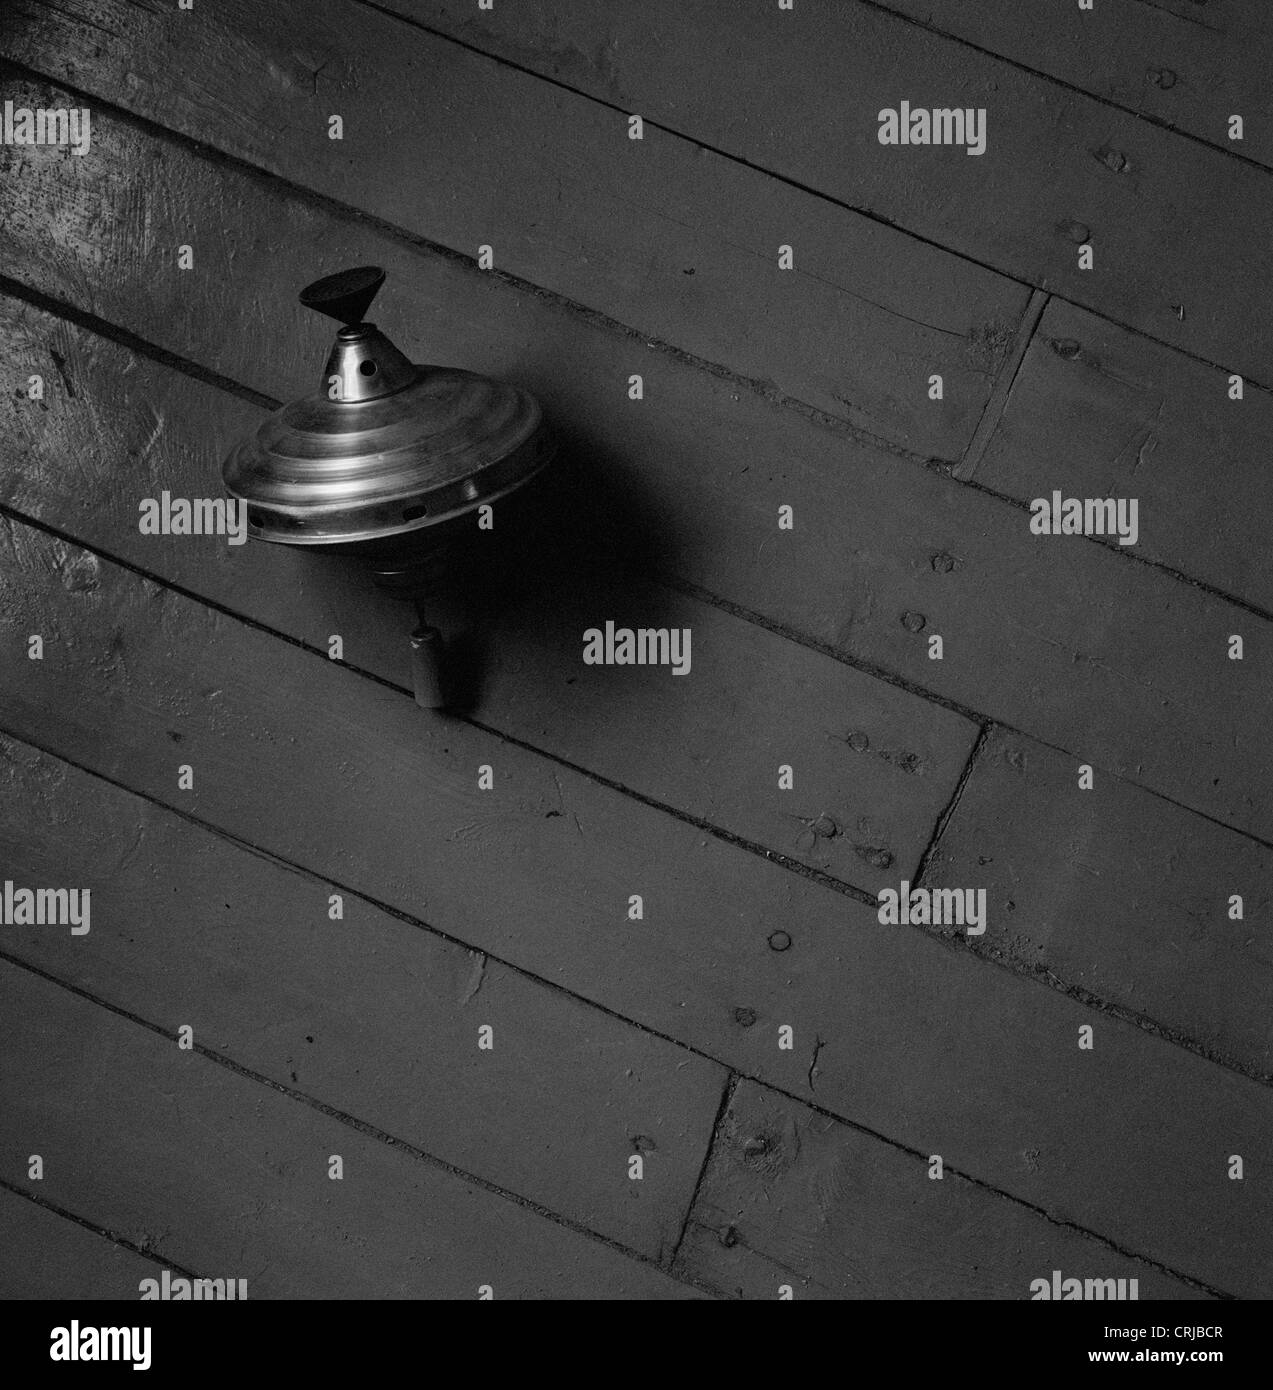 Humming top laying on a floor - Stock Image